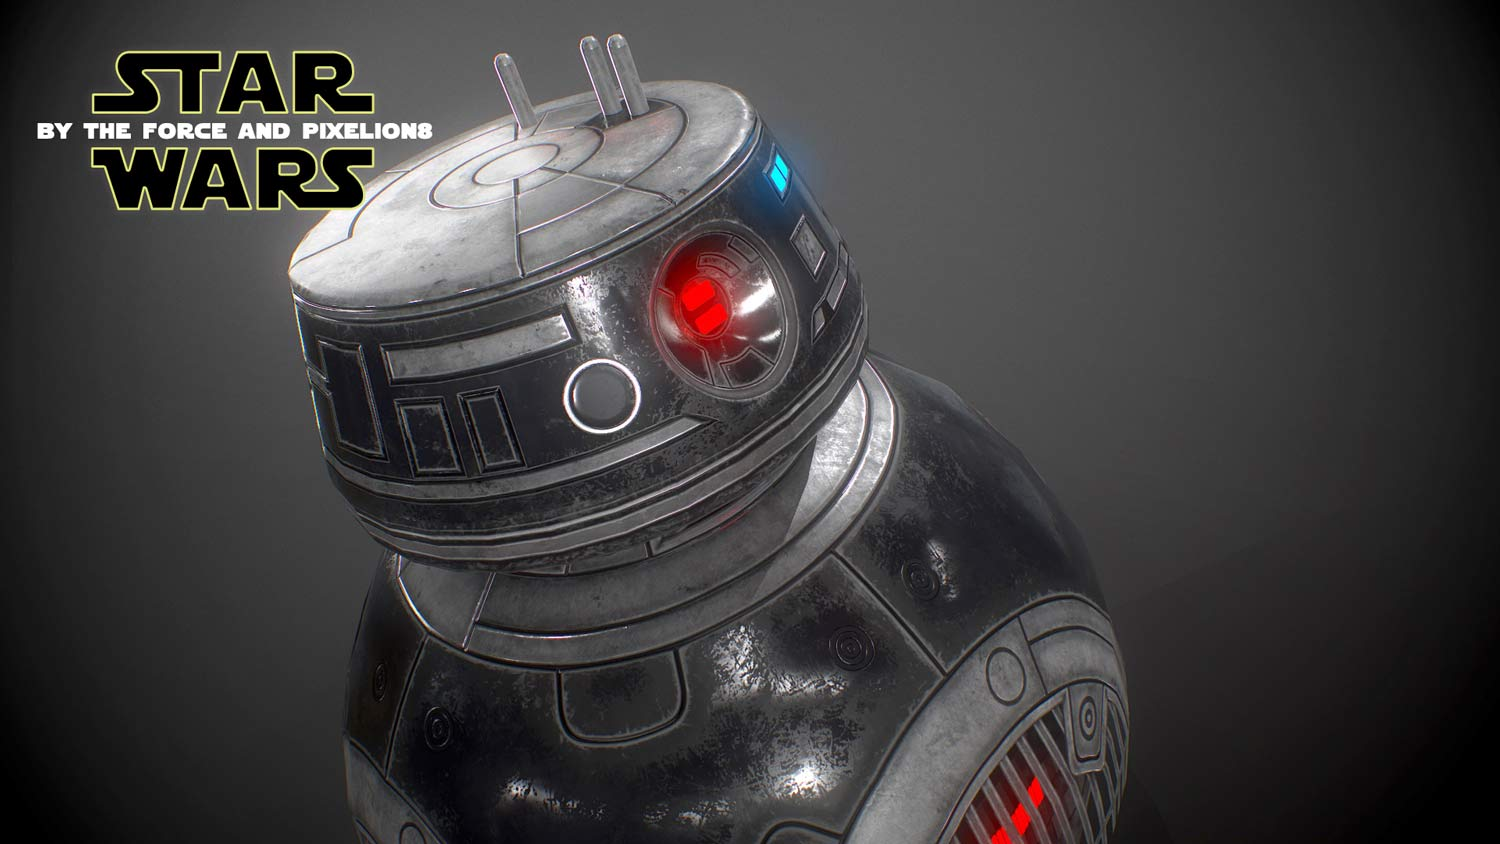 Droid Robots | R2-D2 | C-3PO | Android Robot | Star Wars ...